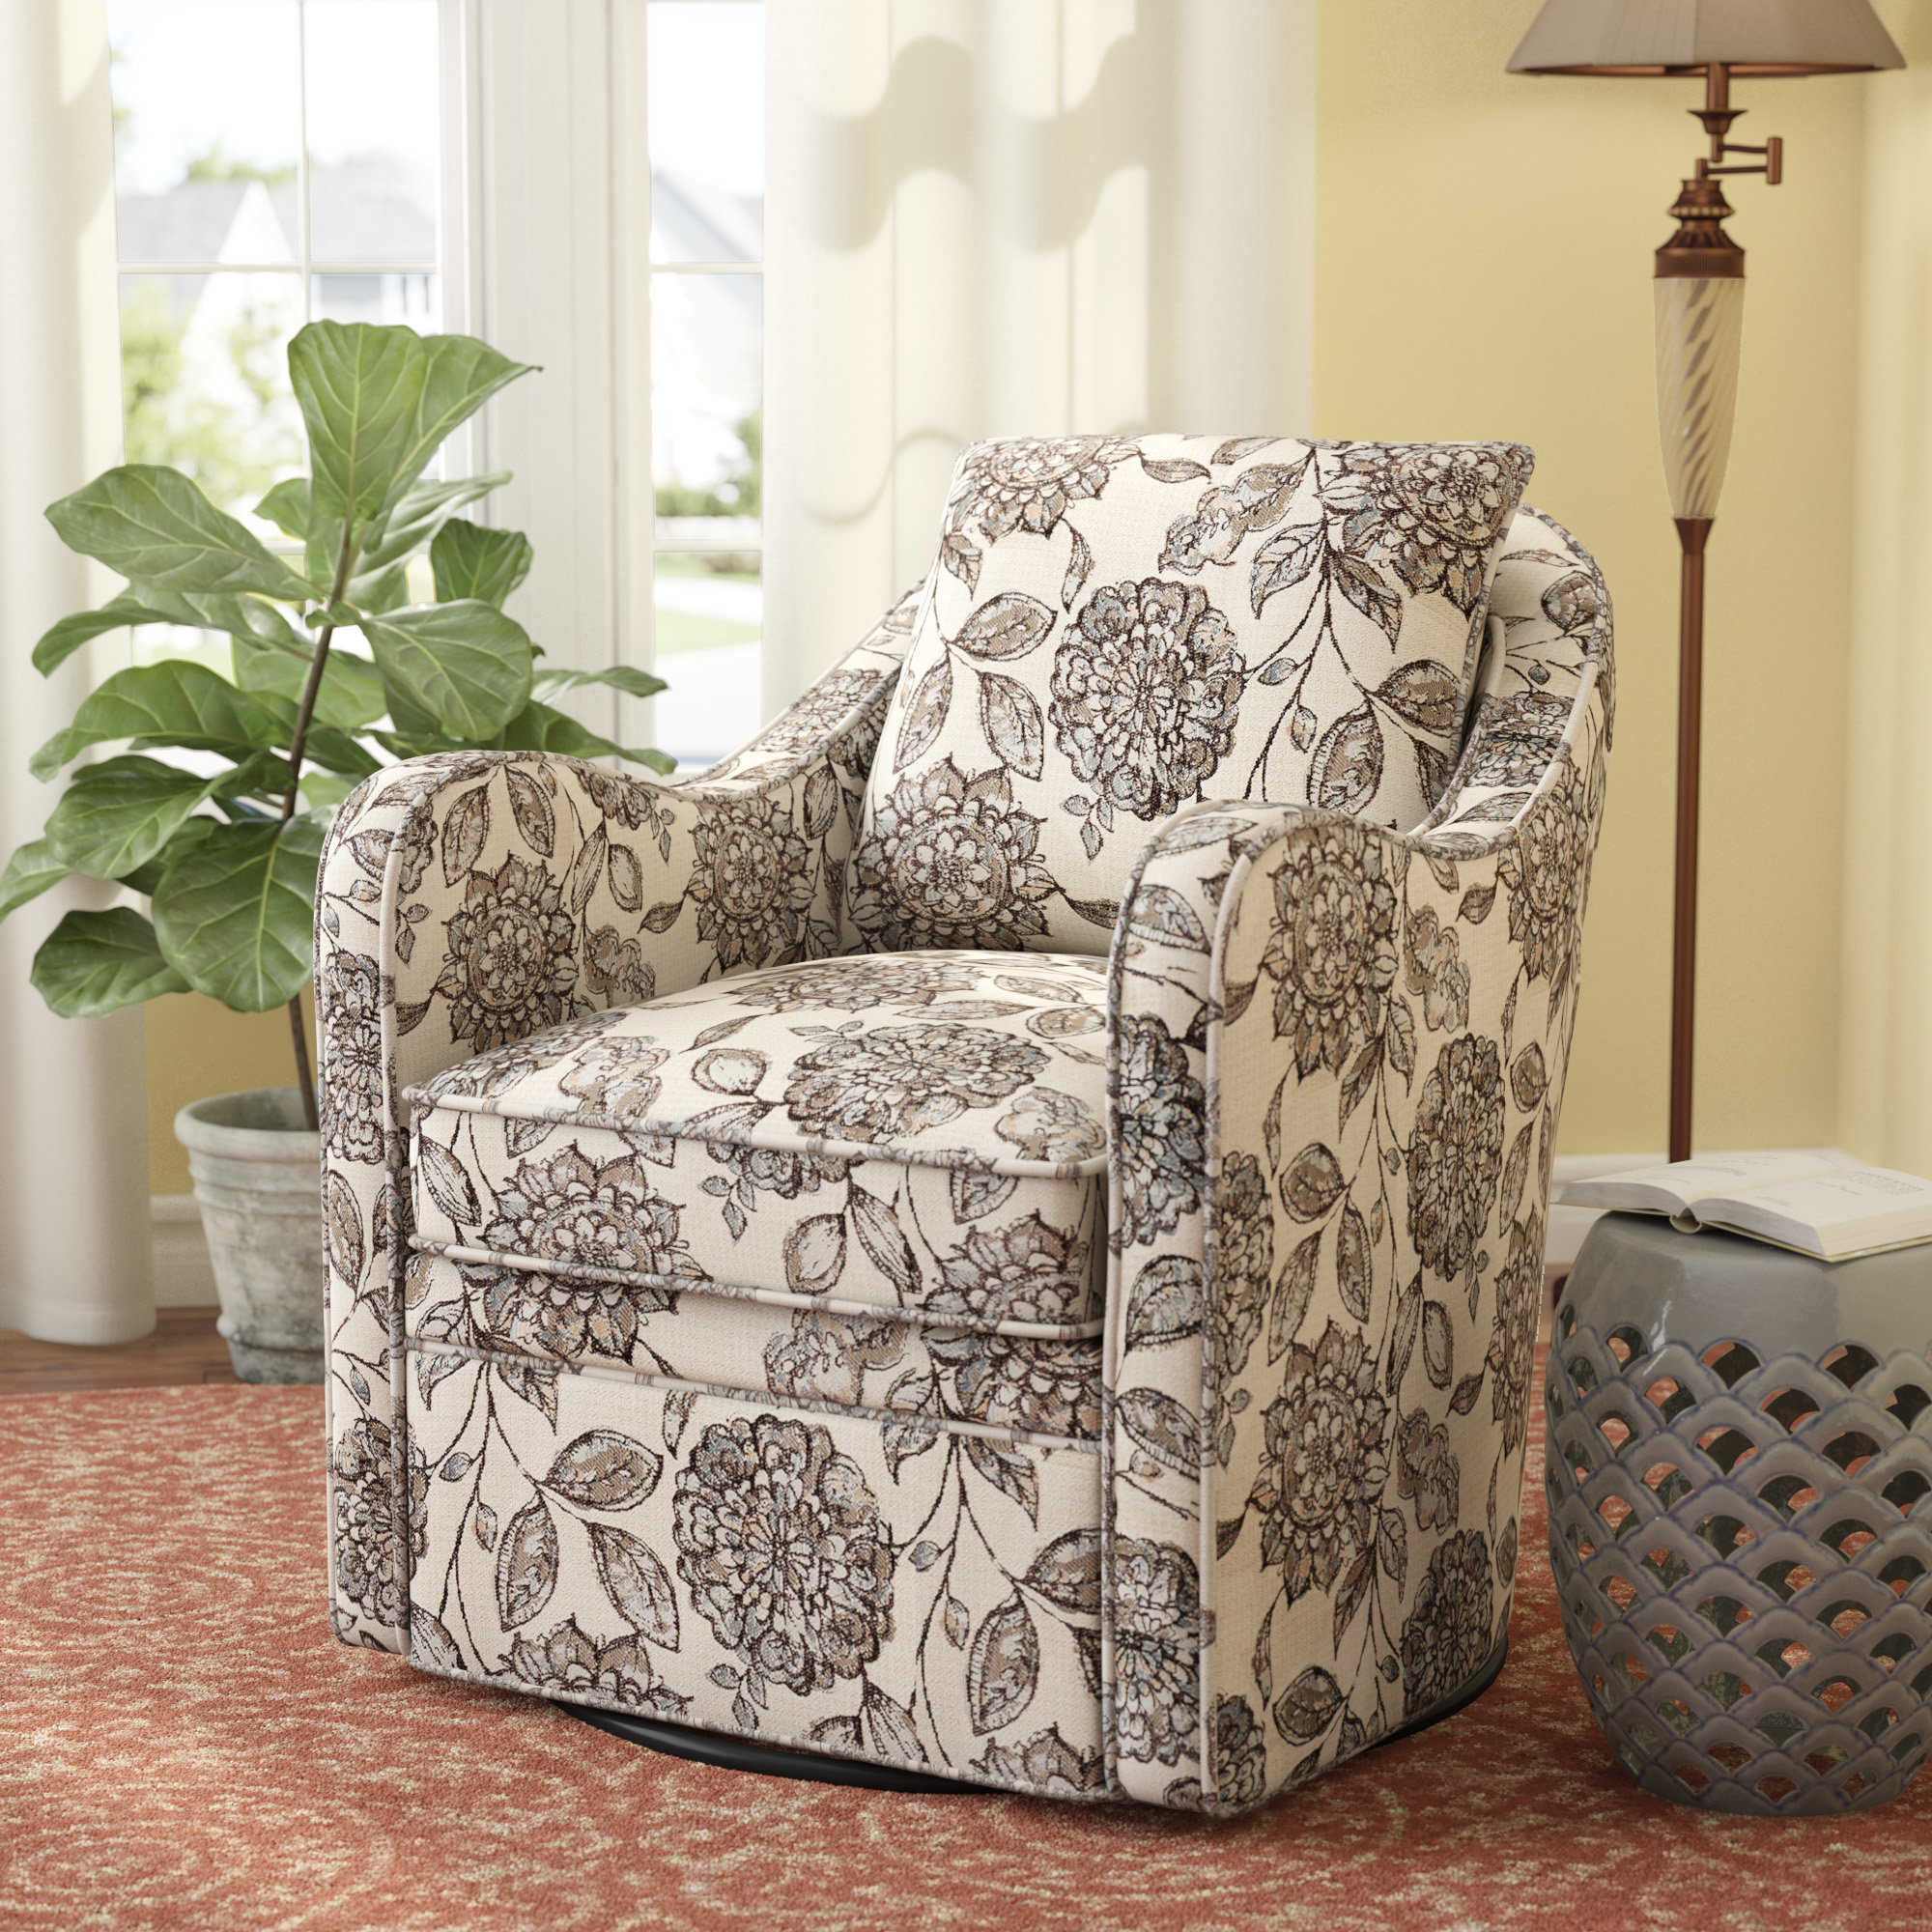 Wayfair Pertaining To Revolve Swivel Accent Chairs (Gallery 4 of 18)